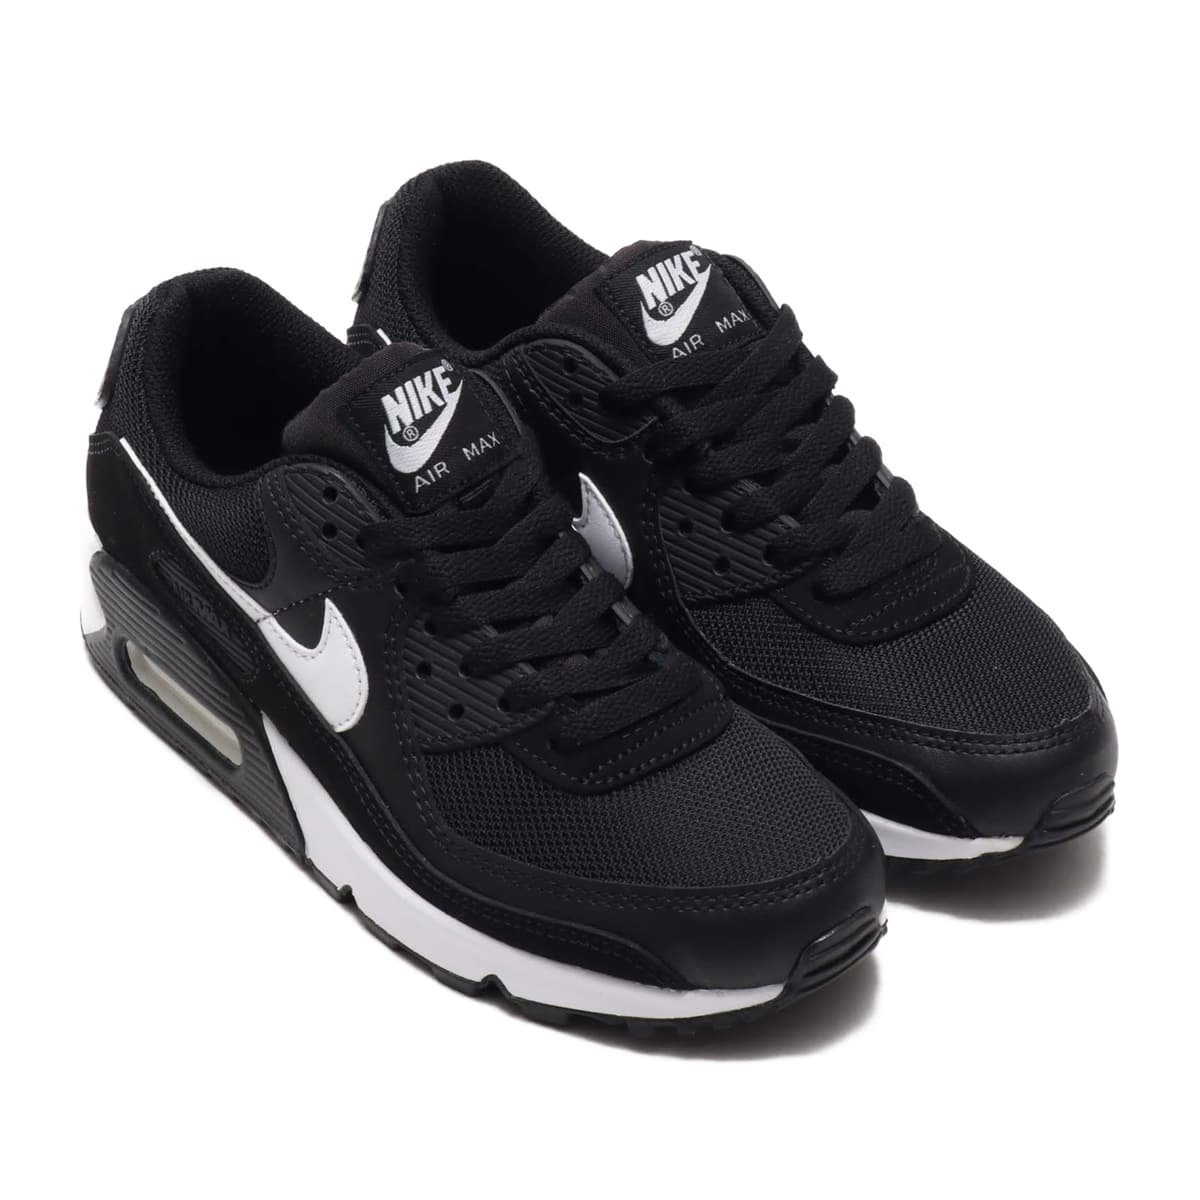 NIKE W AIR MAX 90 BLACK/WHITE-BLACK 21SU-S_photo_large